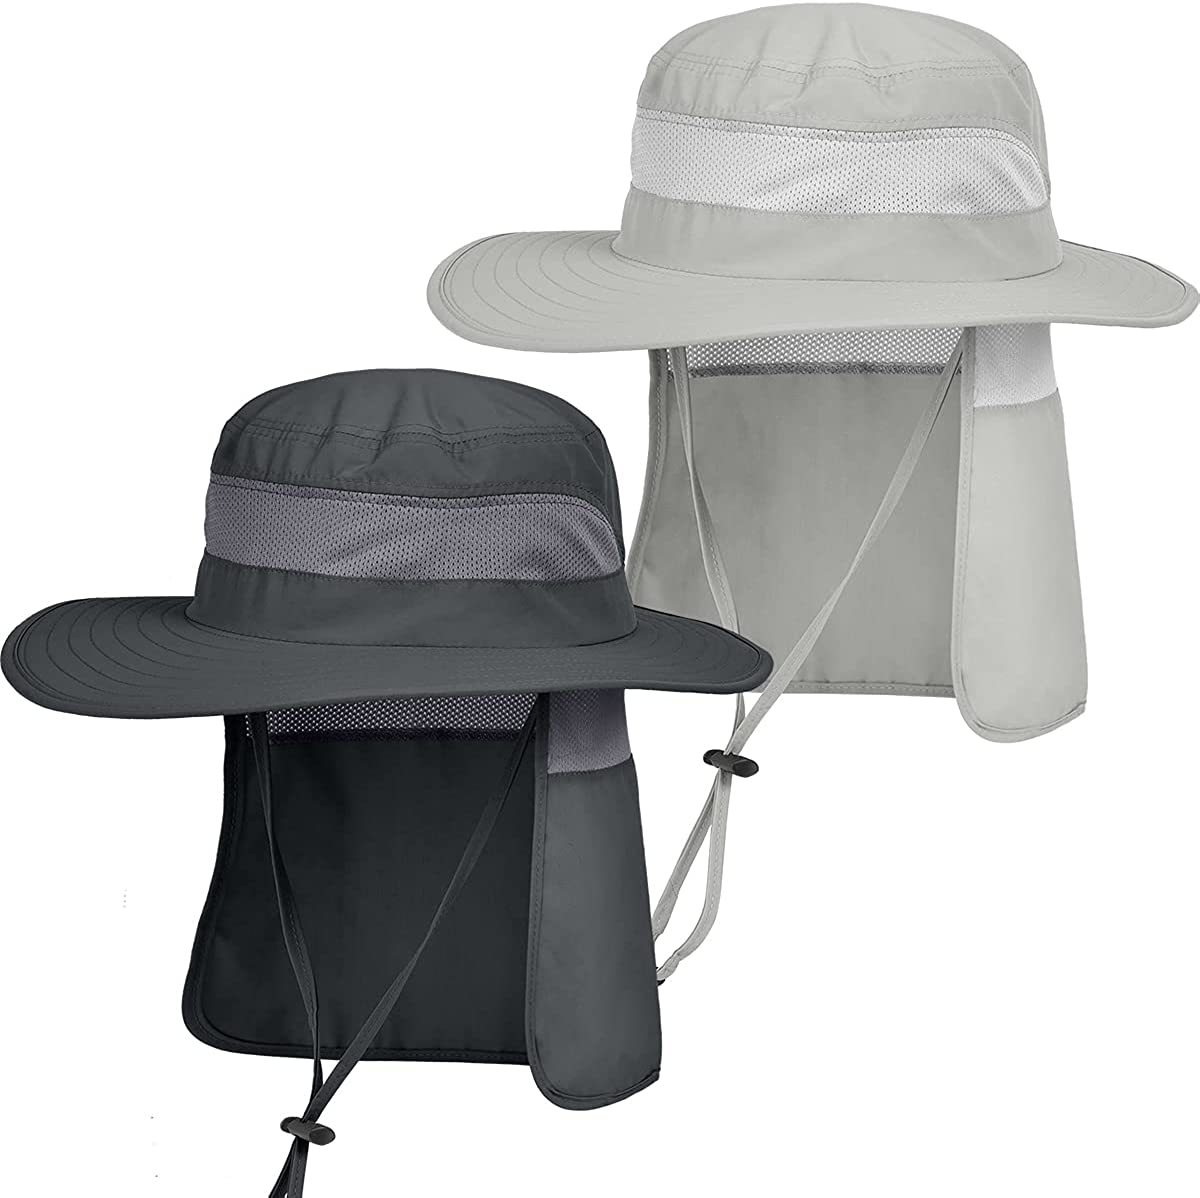 IYEBRAO 2 Pieces Mens Sun Protection Hat with Neck Flap for Fishing Hiking & Garden